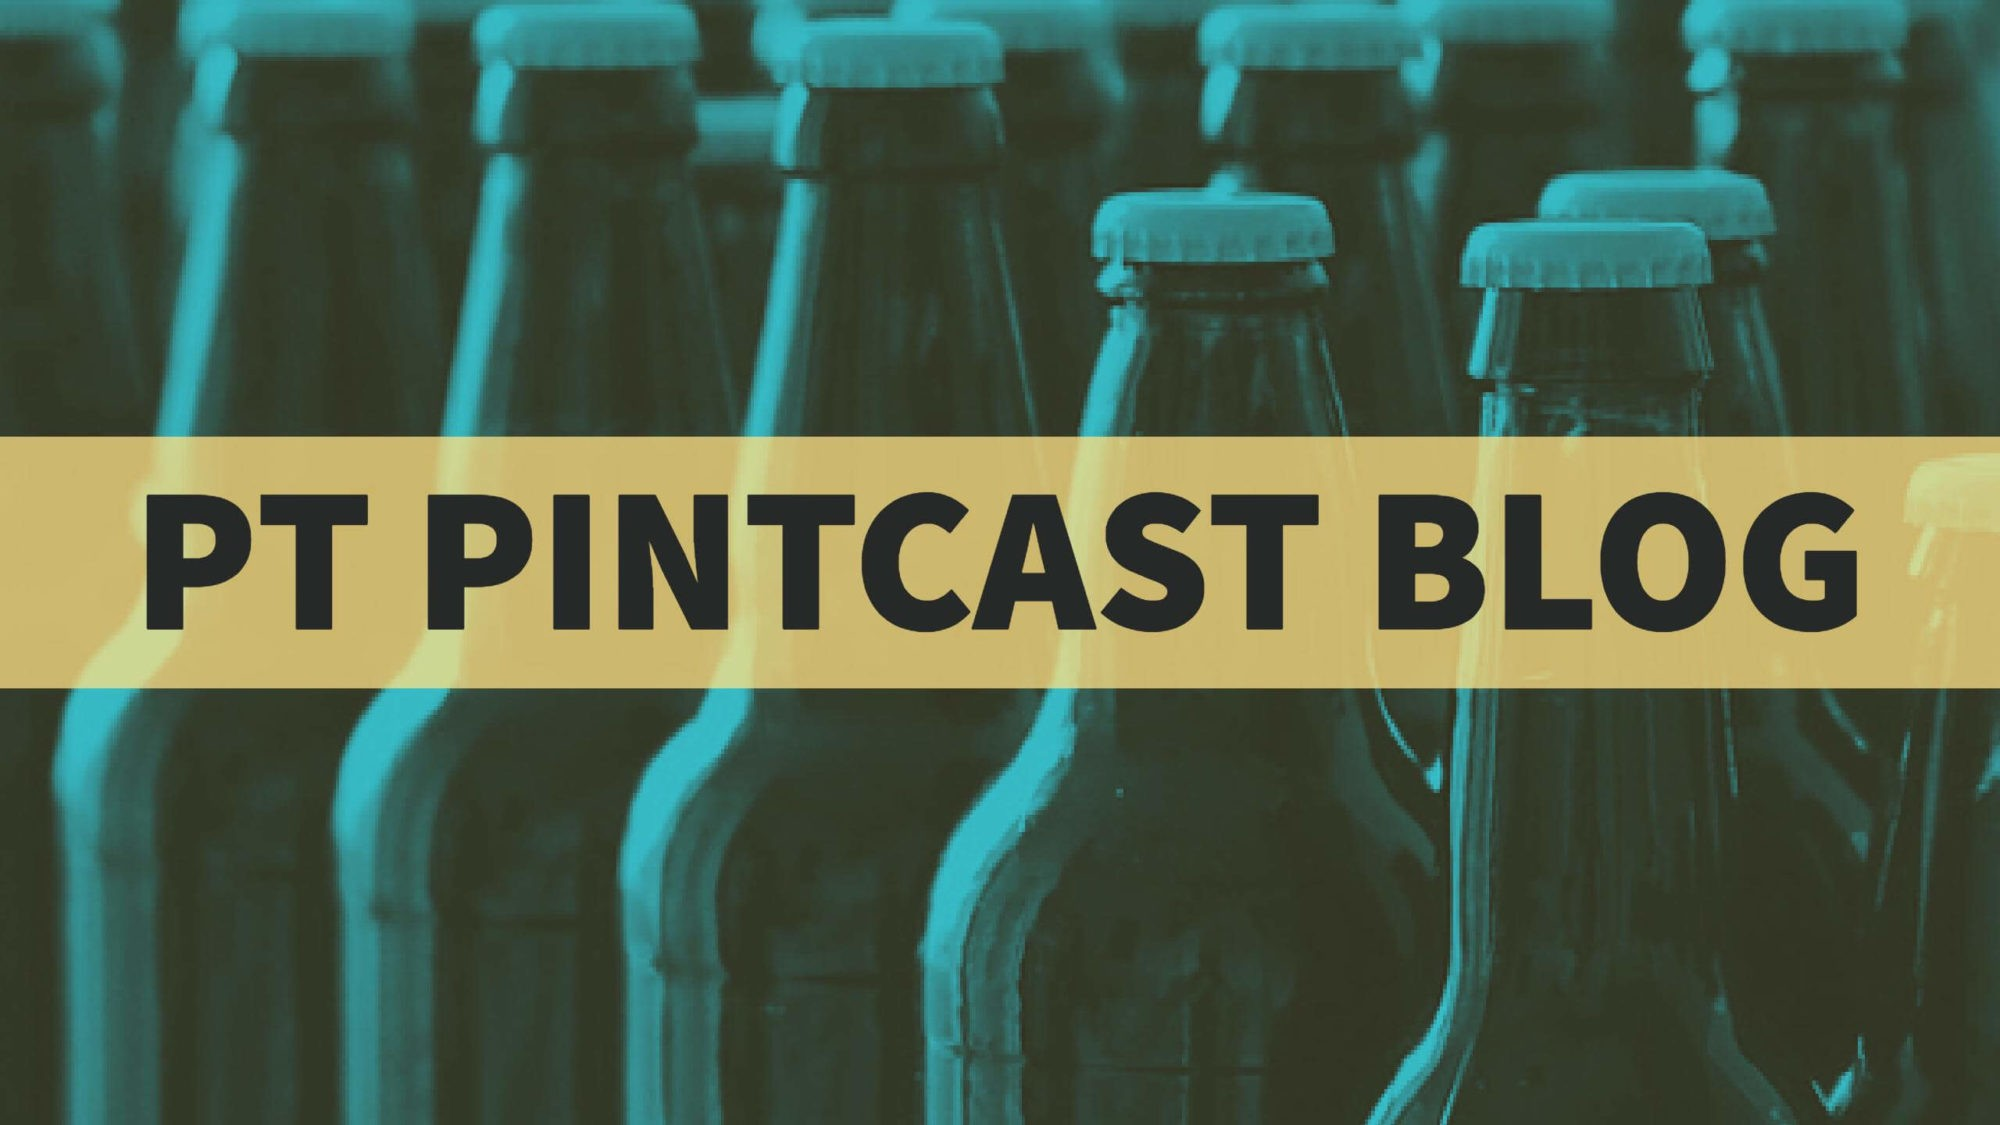 PT Pintcast Blog Orthopedic Travel physical therapy podcast